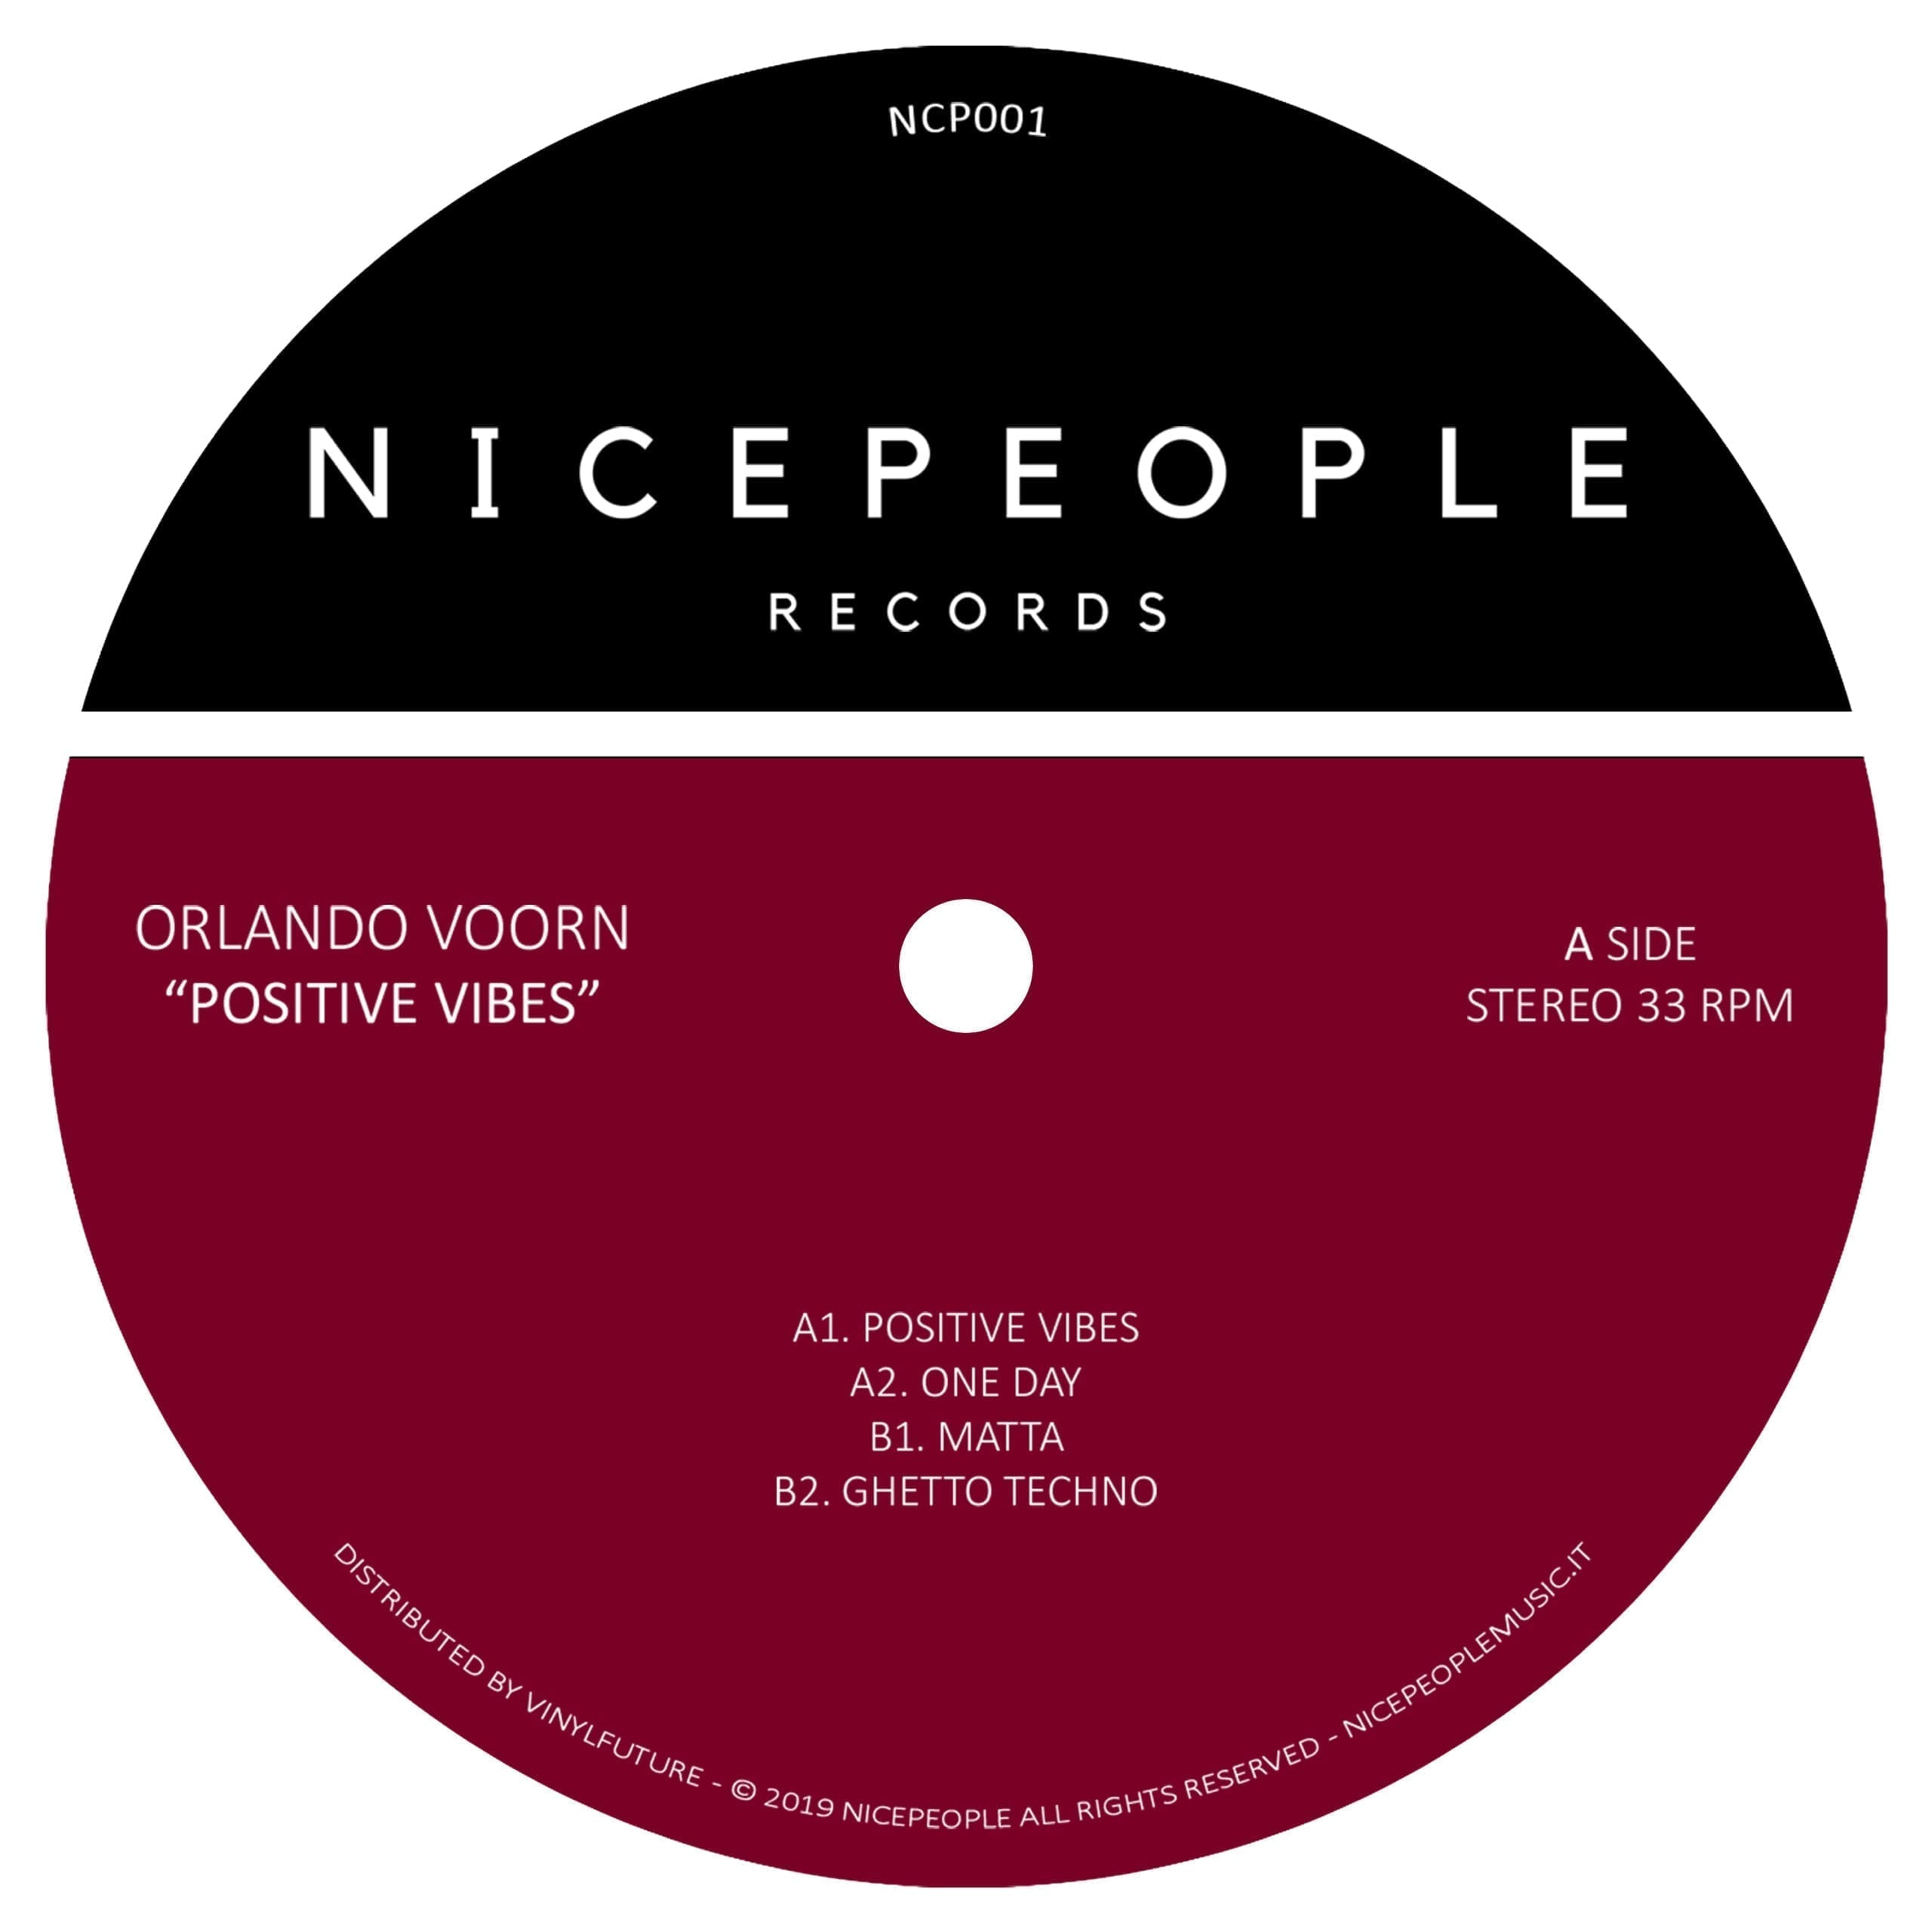 Orlando Voorn drops brand-new 'Positive Vibes' EP on NICEPEOPLE